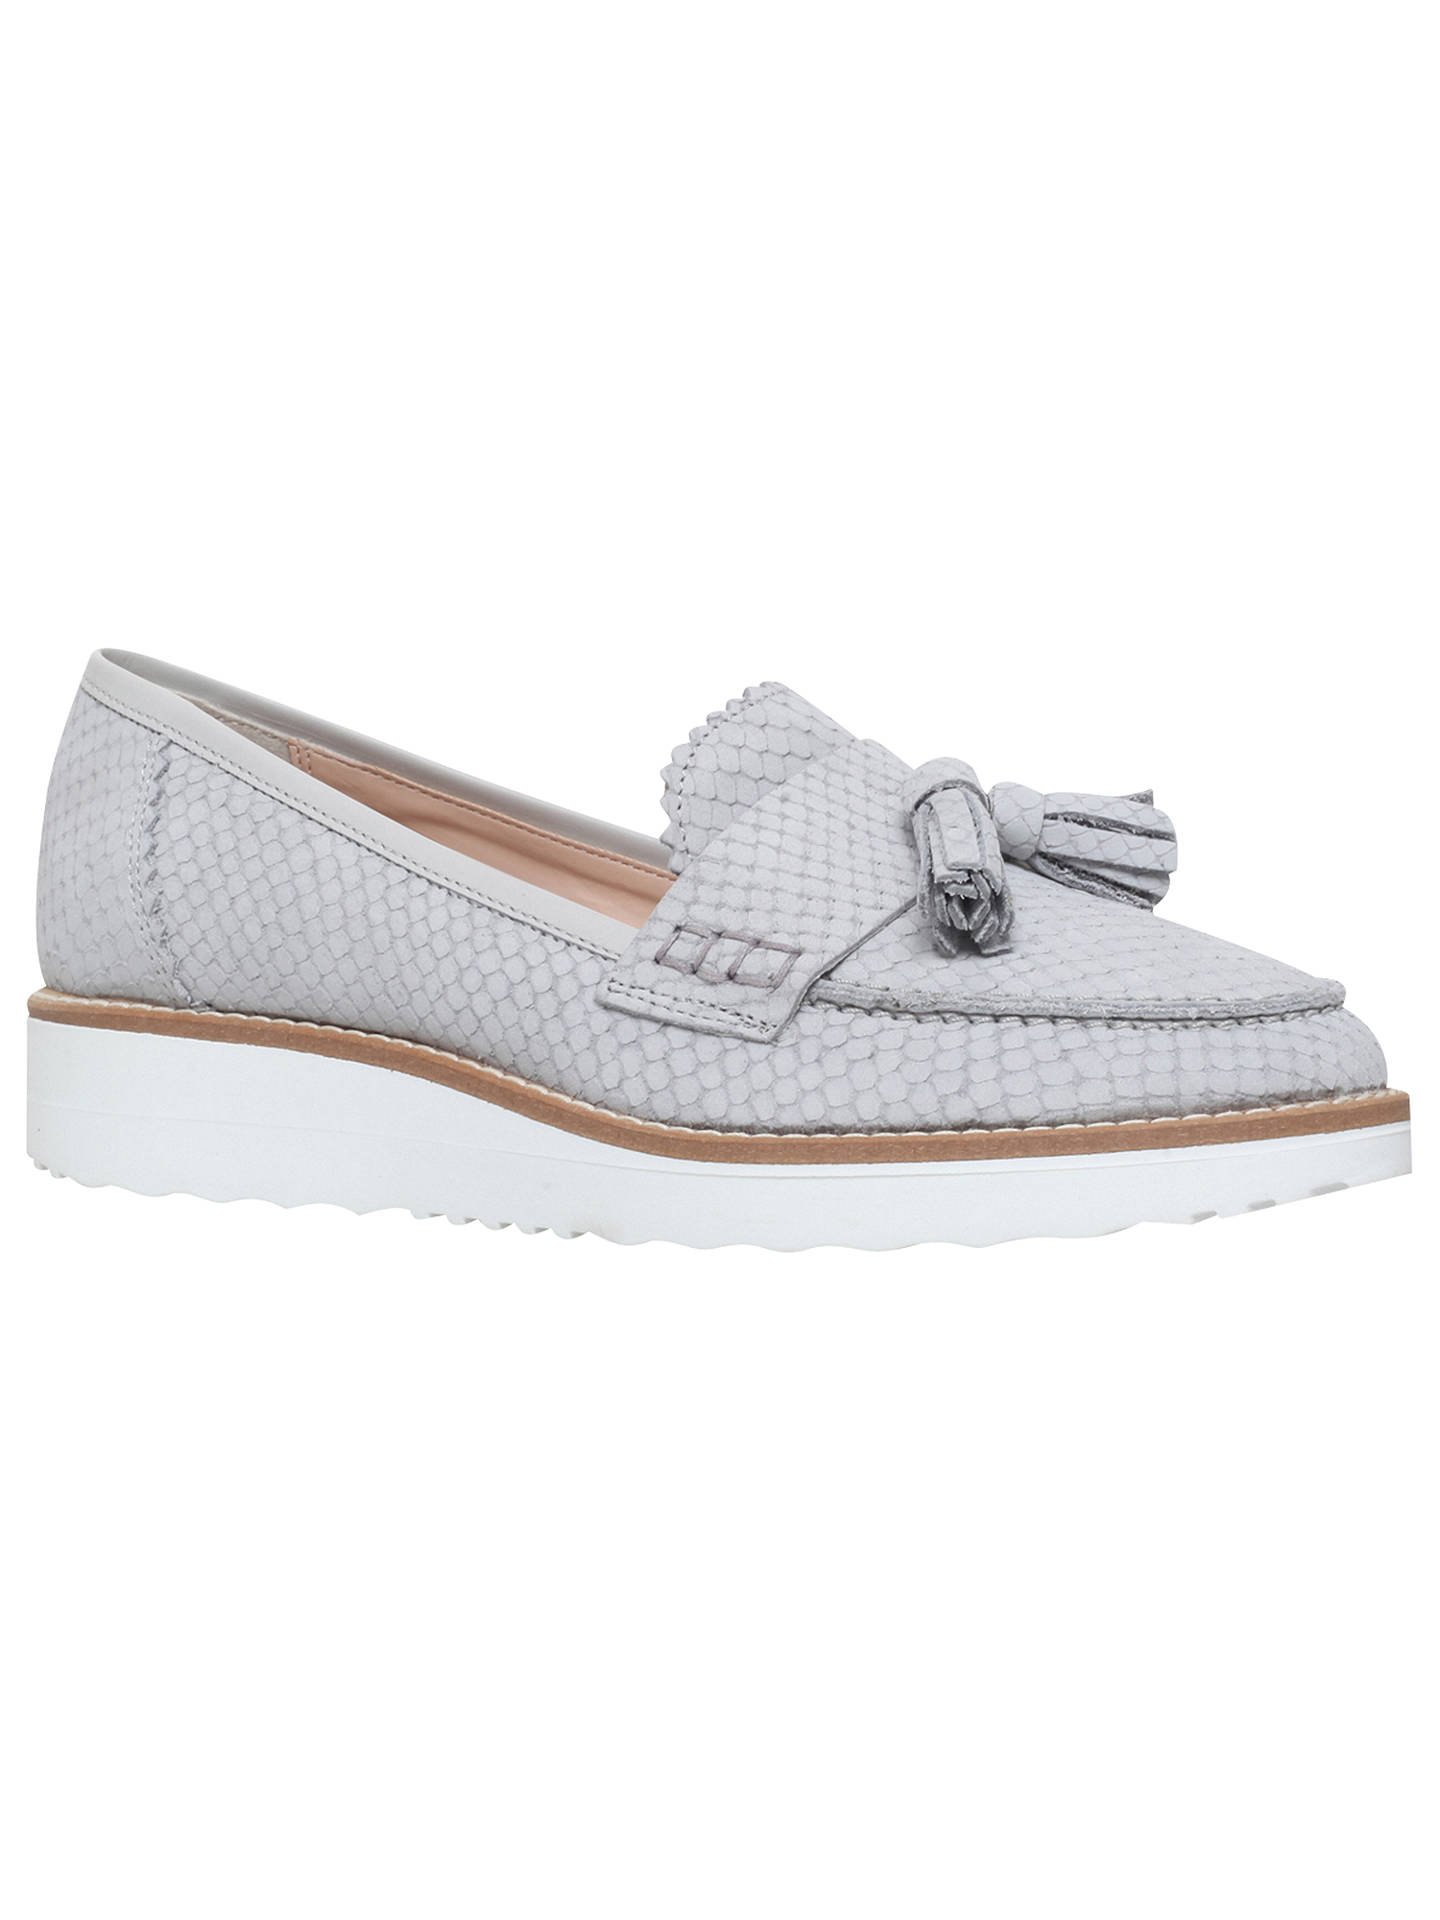 Buy Carvela Limbo Wedge Heeled Loafers, Grey Reptile, 3 Online at johnlewis.com